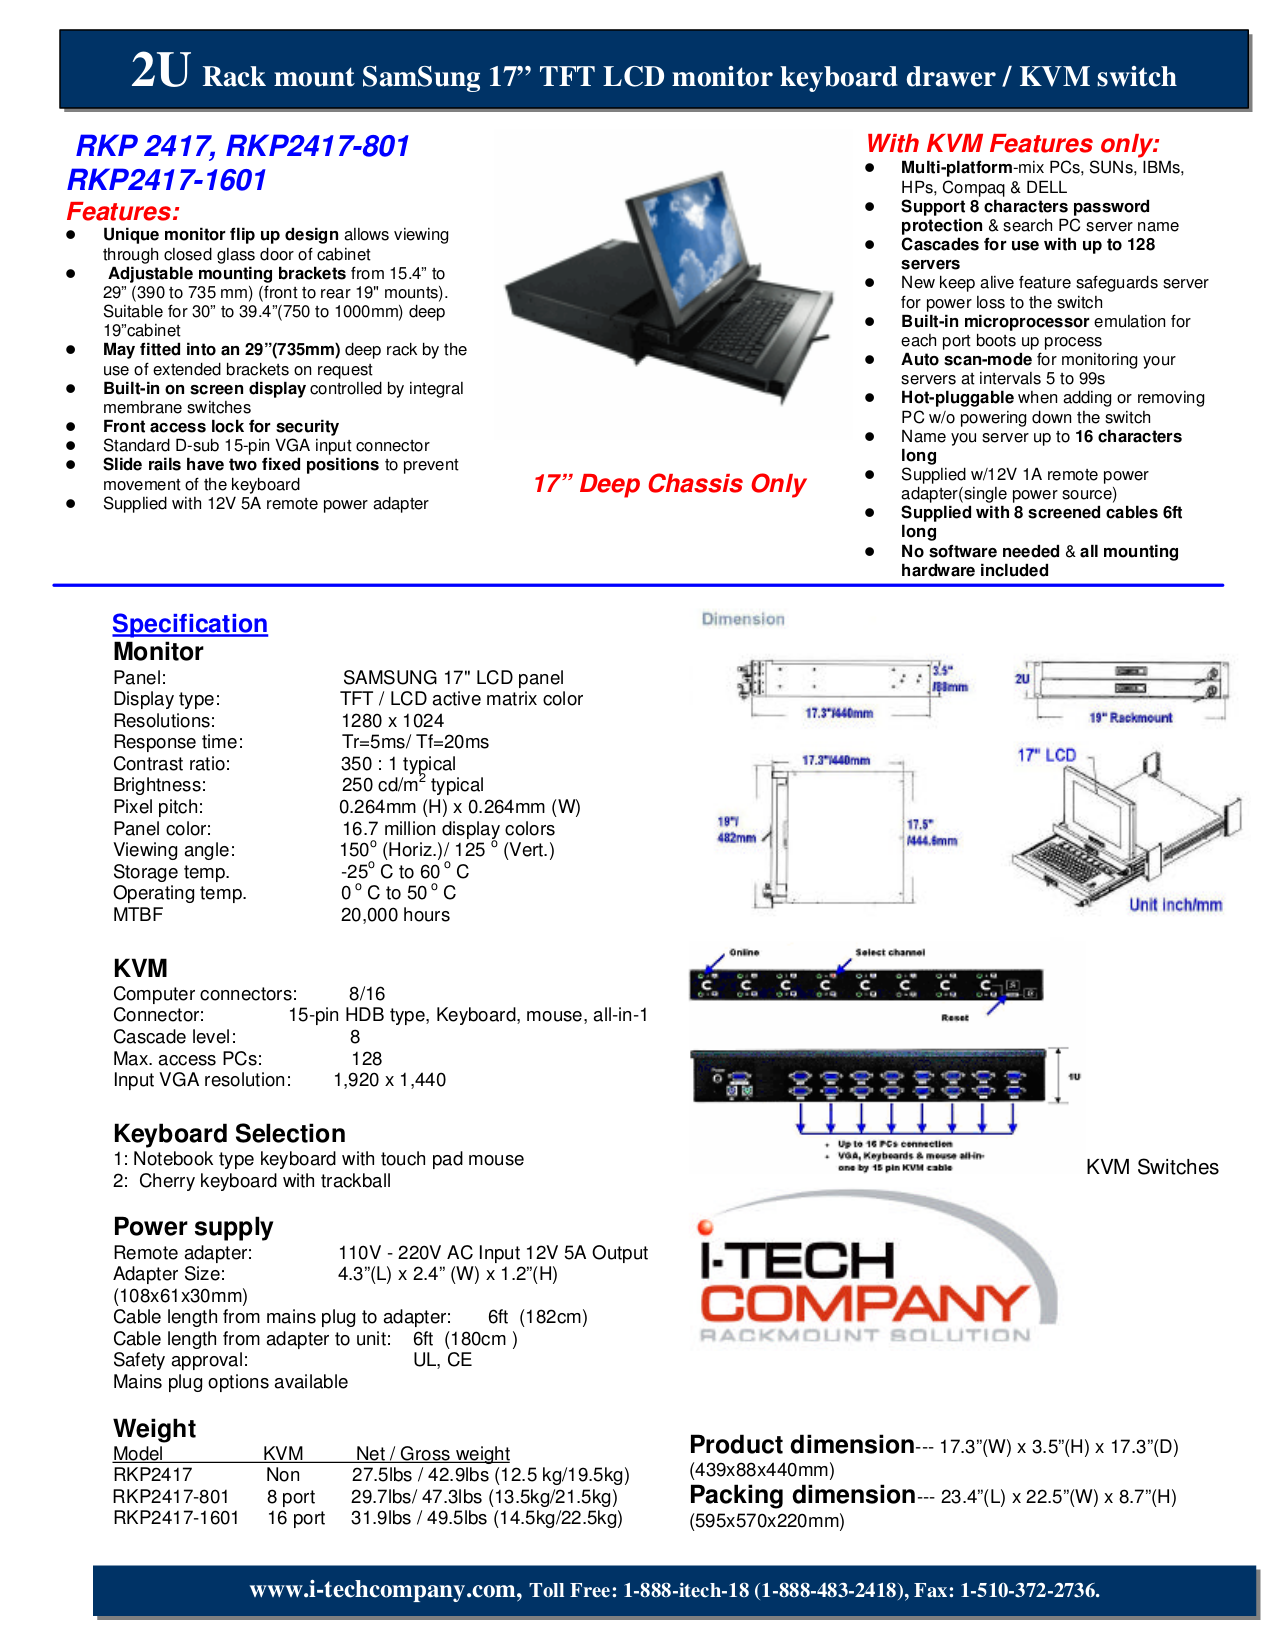 pdf for I-Tech Other RKP2417-S801 Keyboard Drawers manual